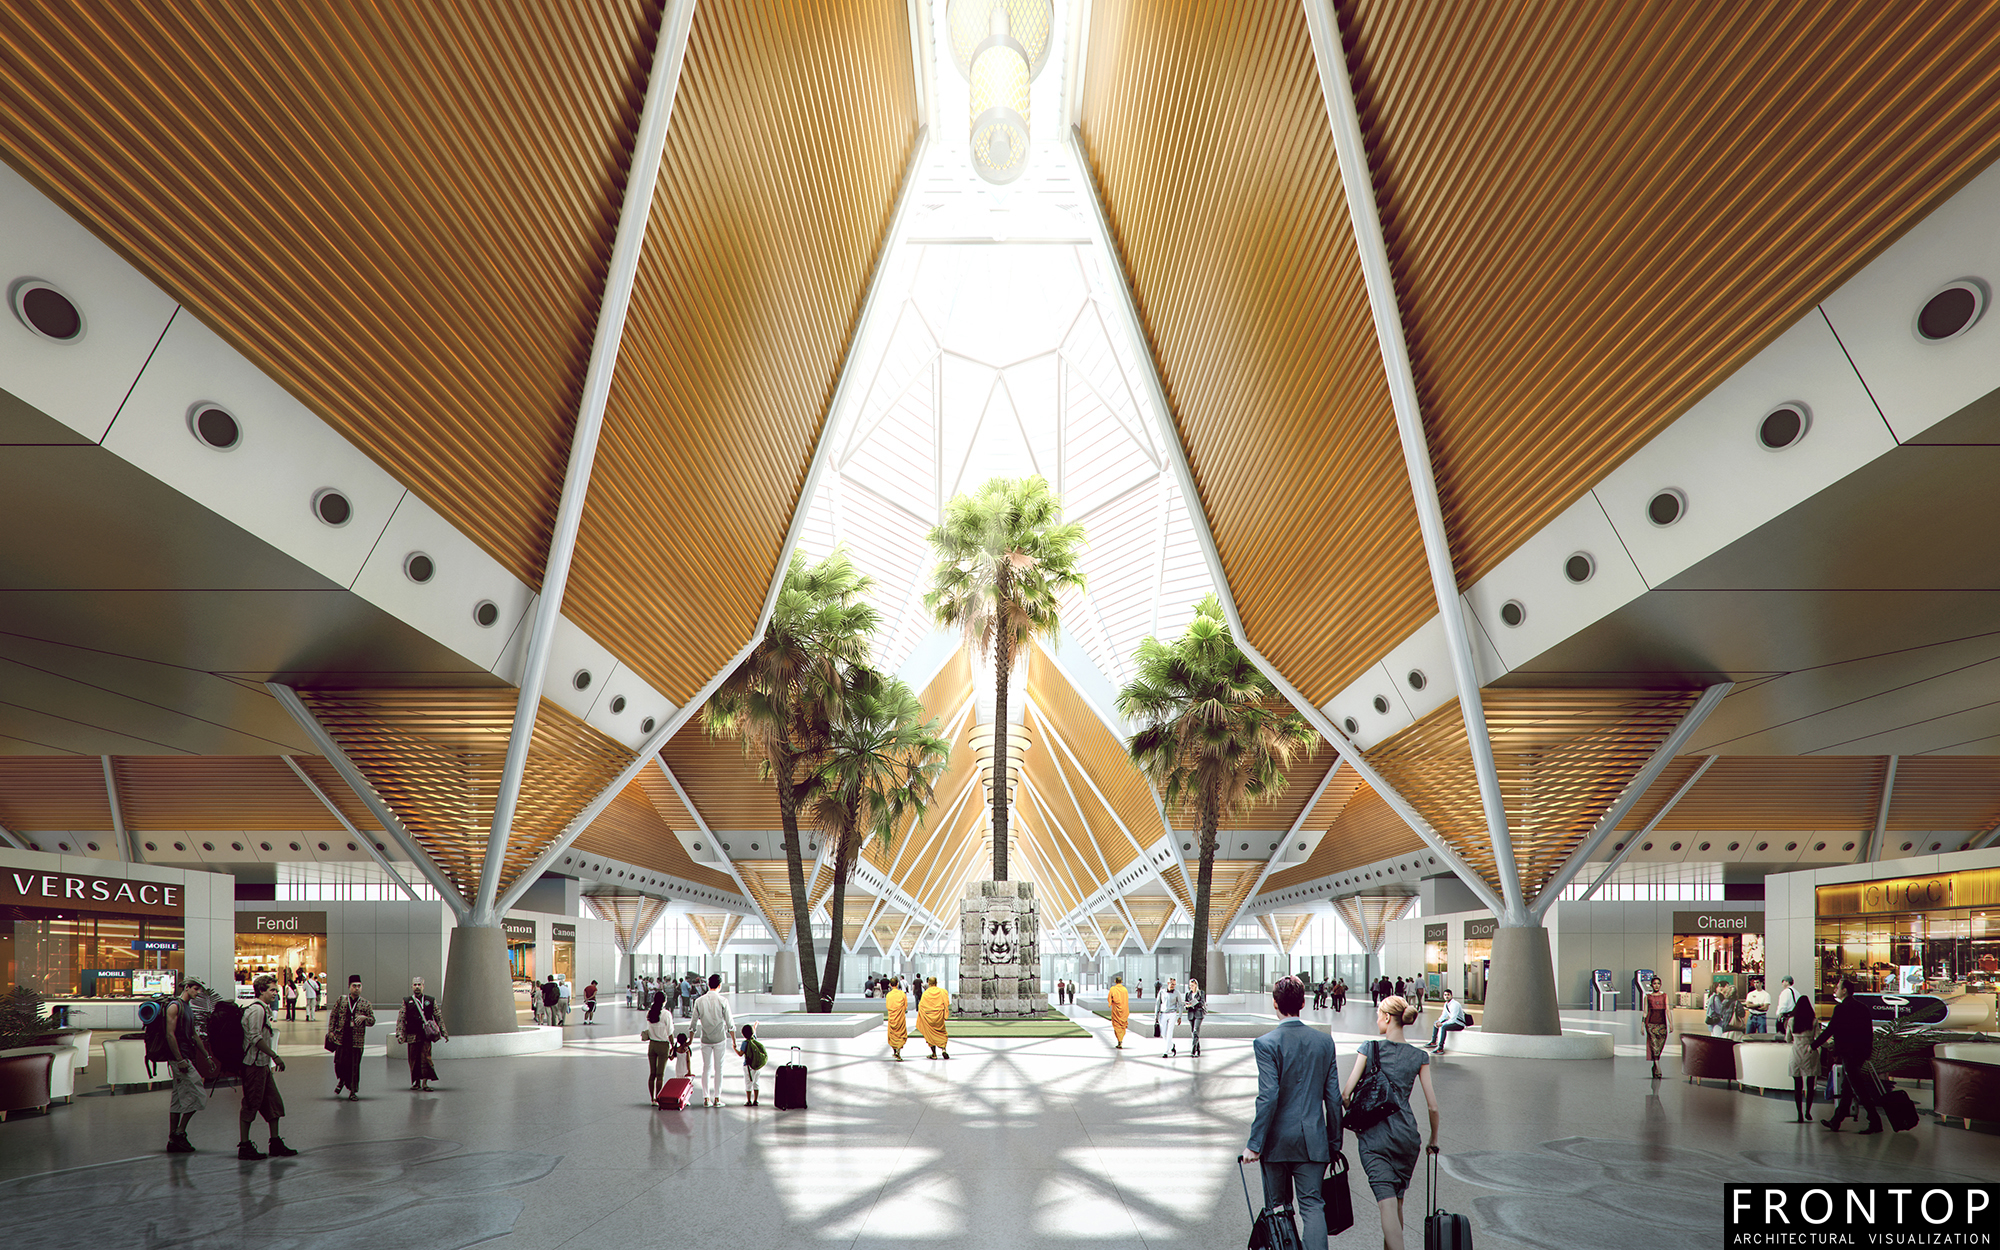 Professional China 3d Perspective Rendering -